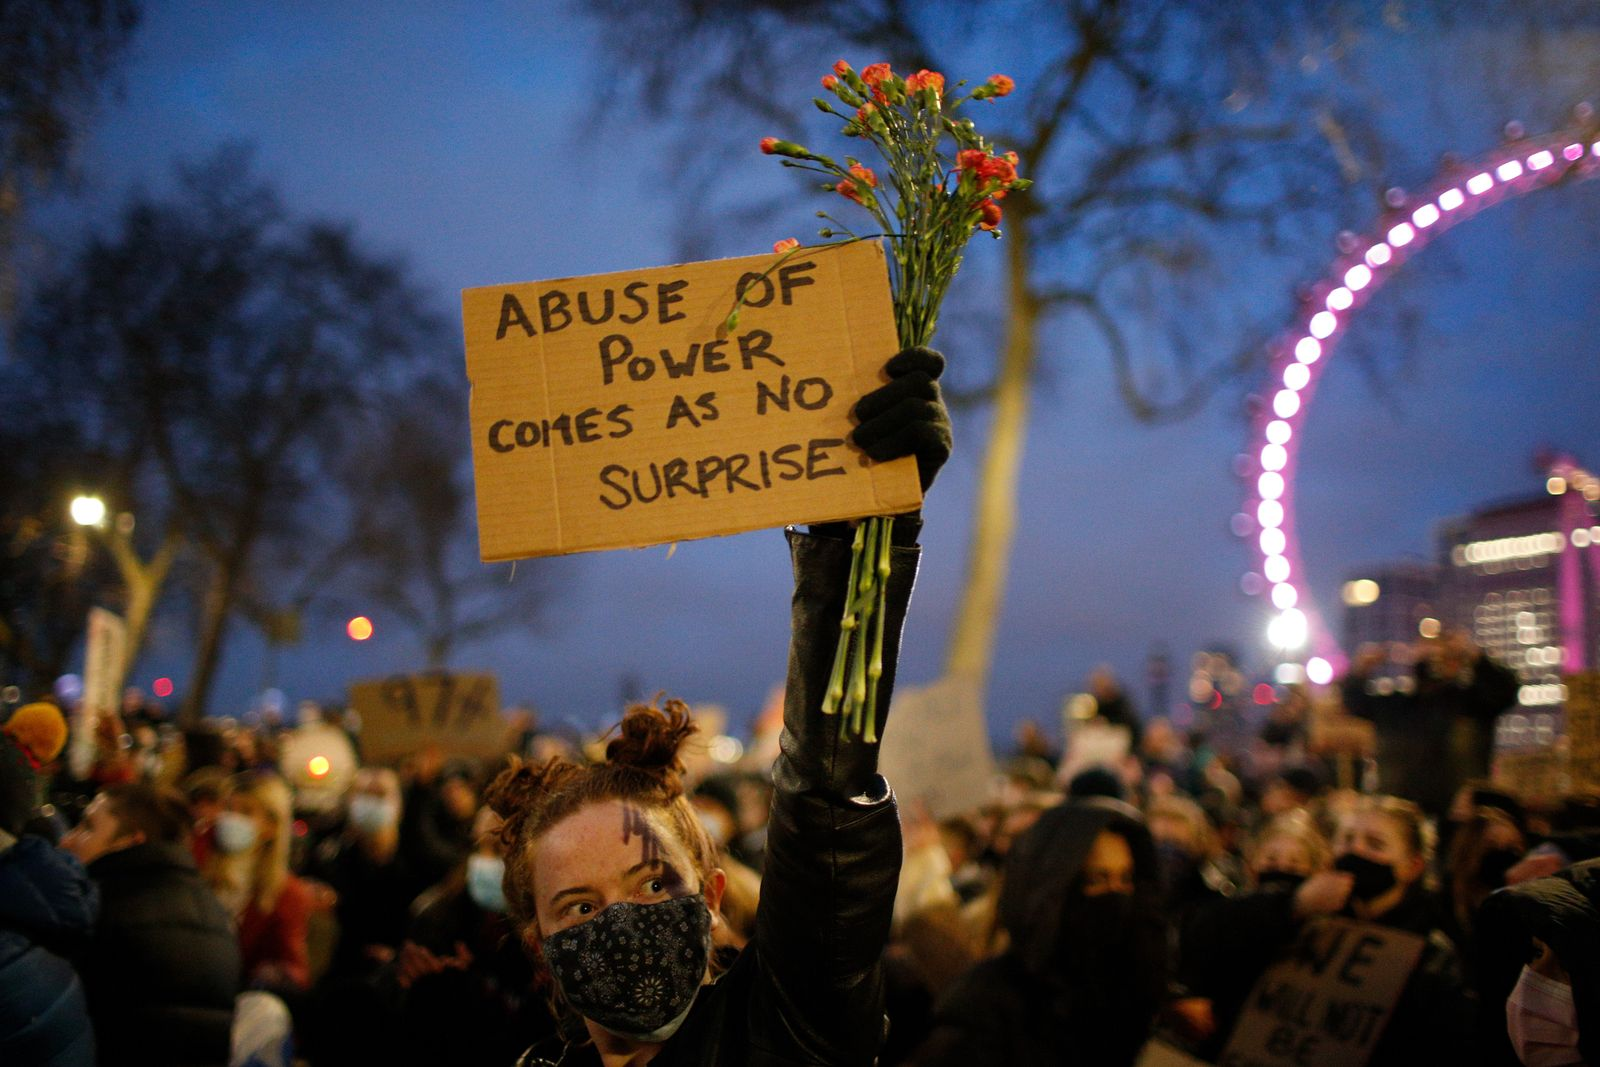 Violence against women and new proposed police powers protested in London